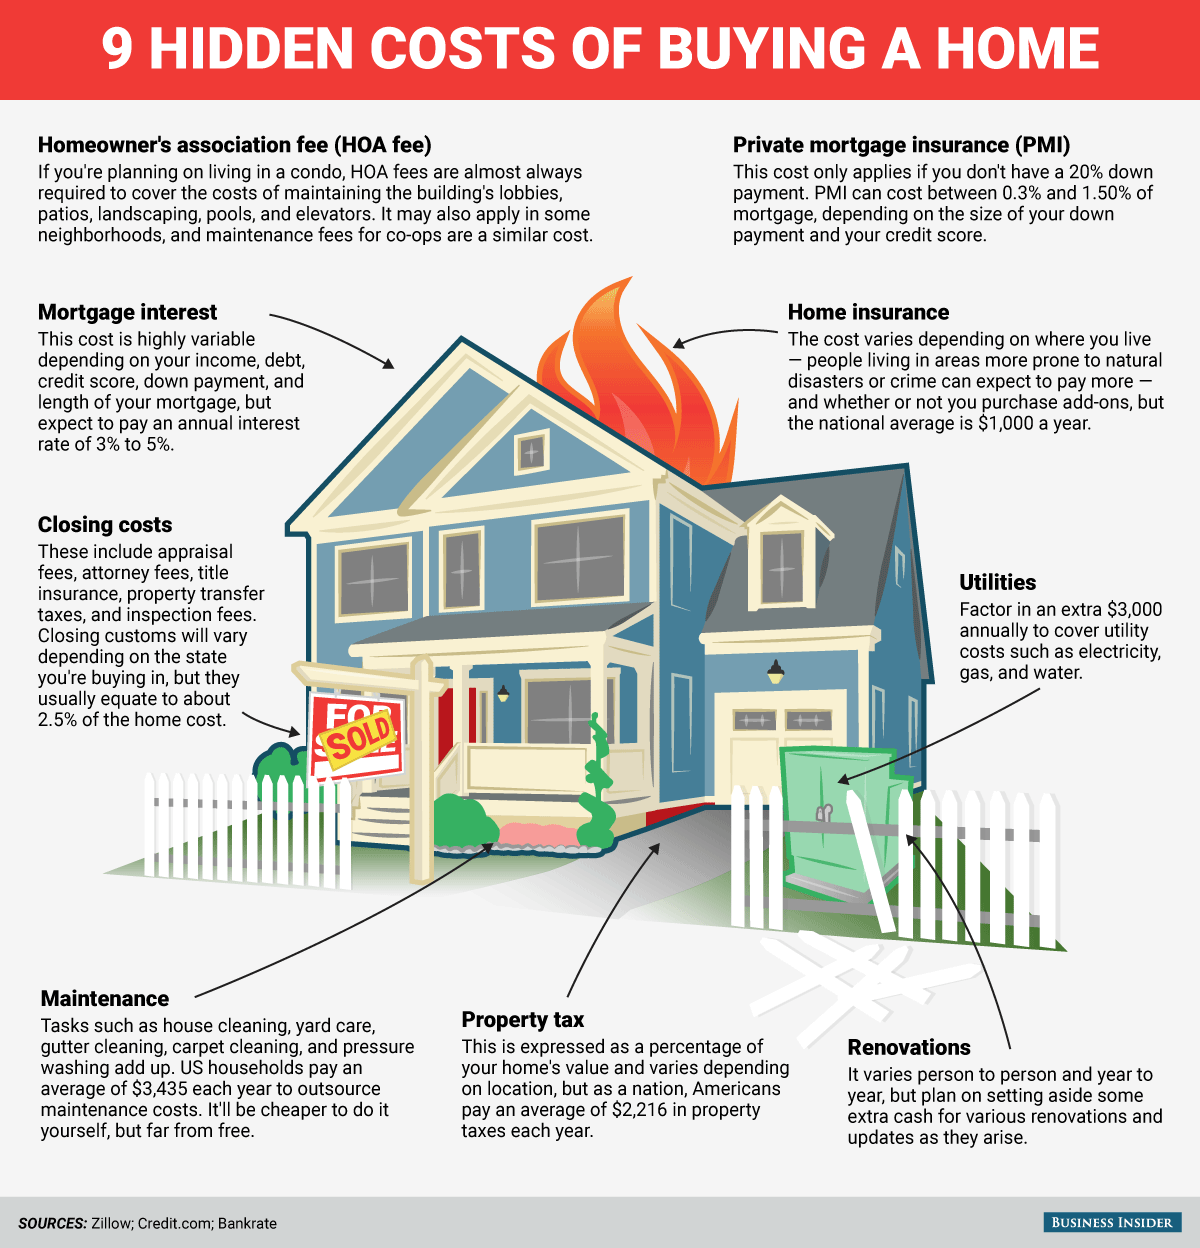 bi-graphic_9-hidden-costs-of-buying-a-home